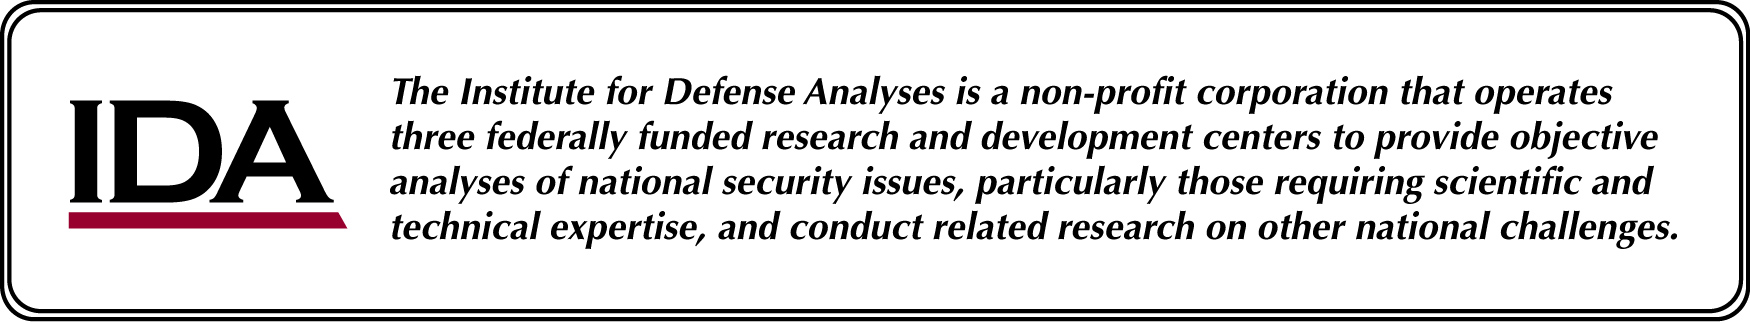 About This Publication This work was conducted by the Institute for Defense Analyses under contract W91WAW-09-C-0003, Task ET-20-3263, Advanced Manufacturing Analyses for ODNI, for the Office of the